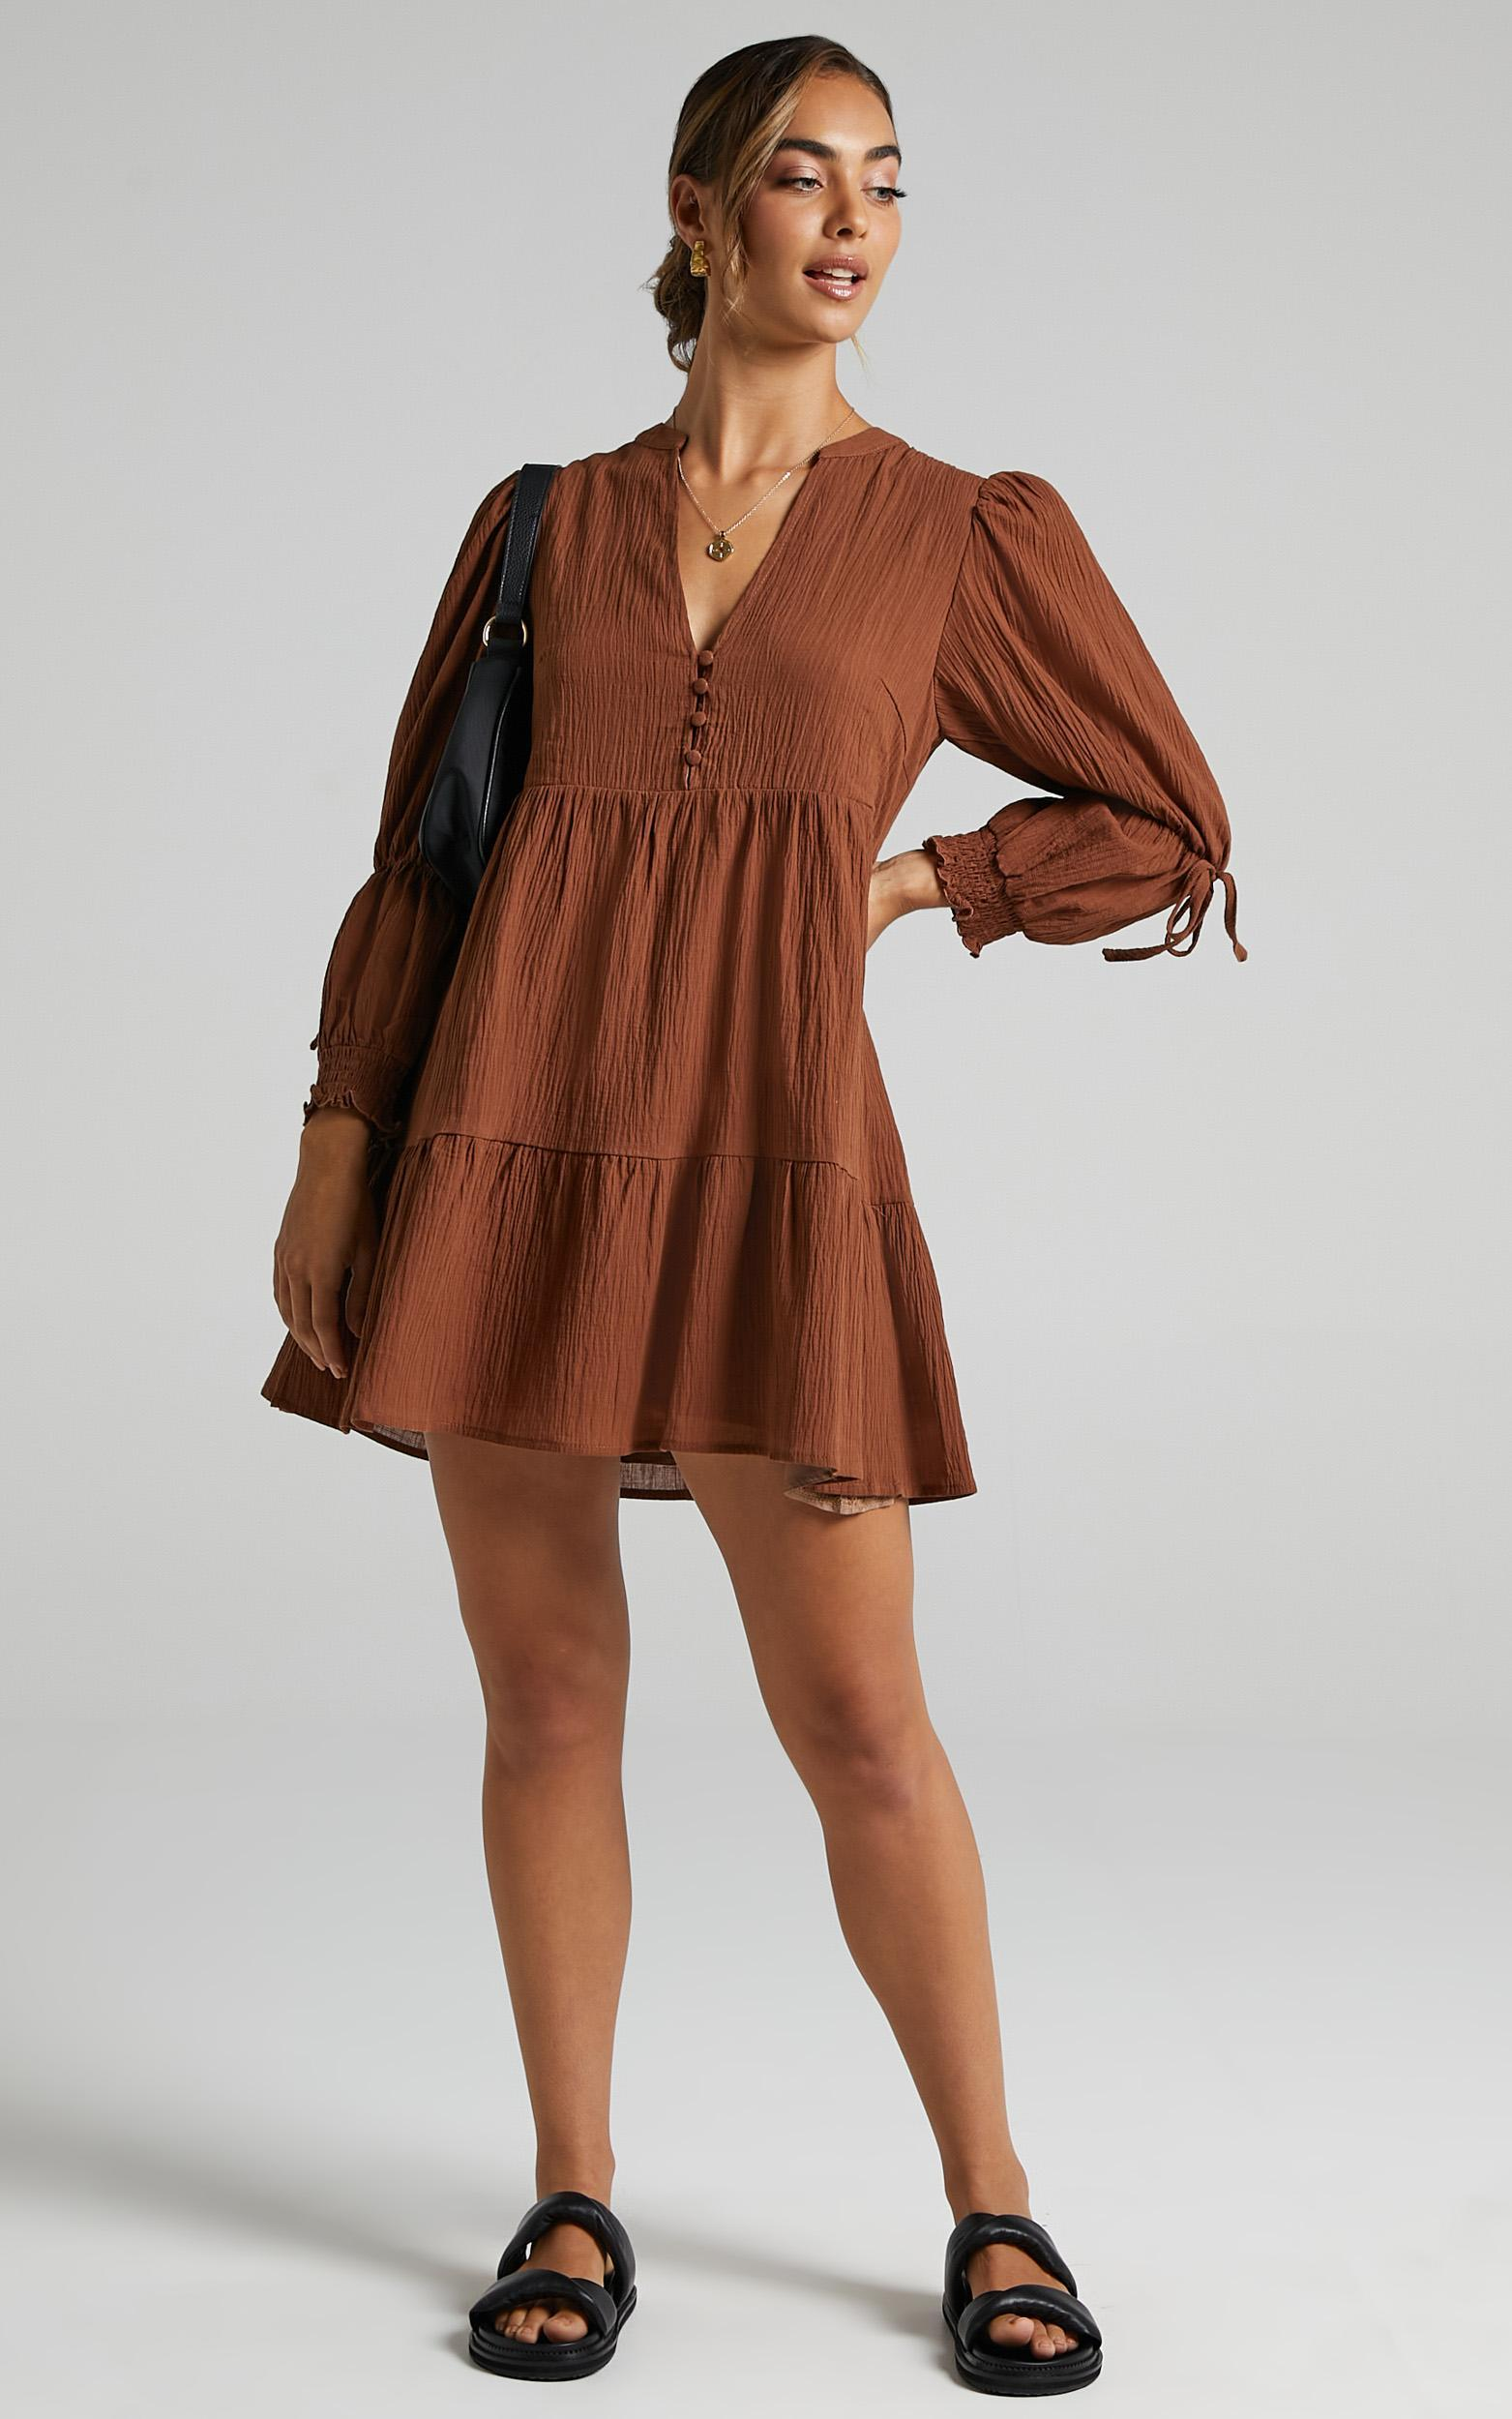 Orald Dress in Chocolate - 6 (XS), BRN9, hi-res image number null